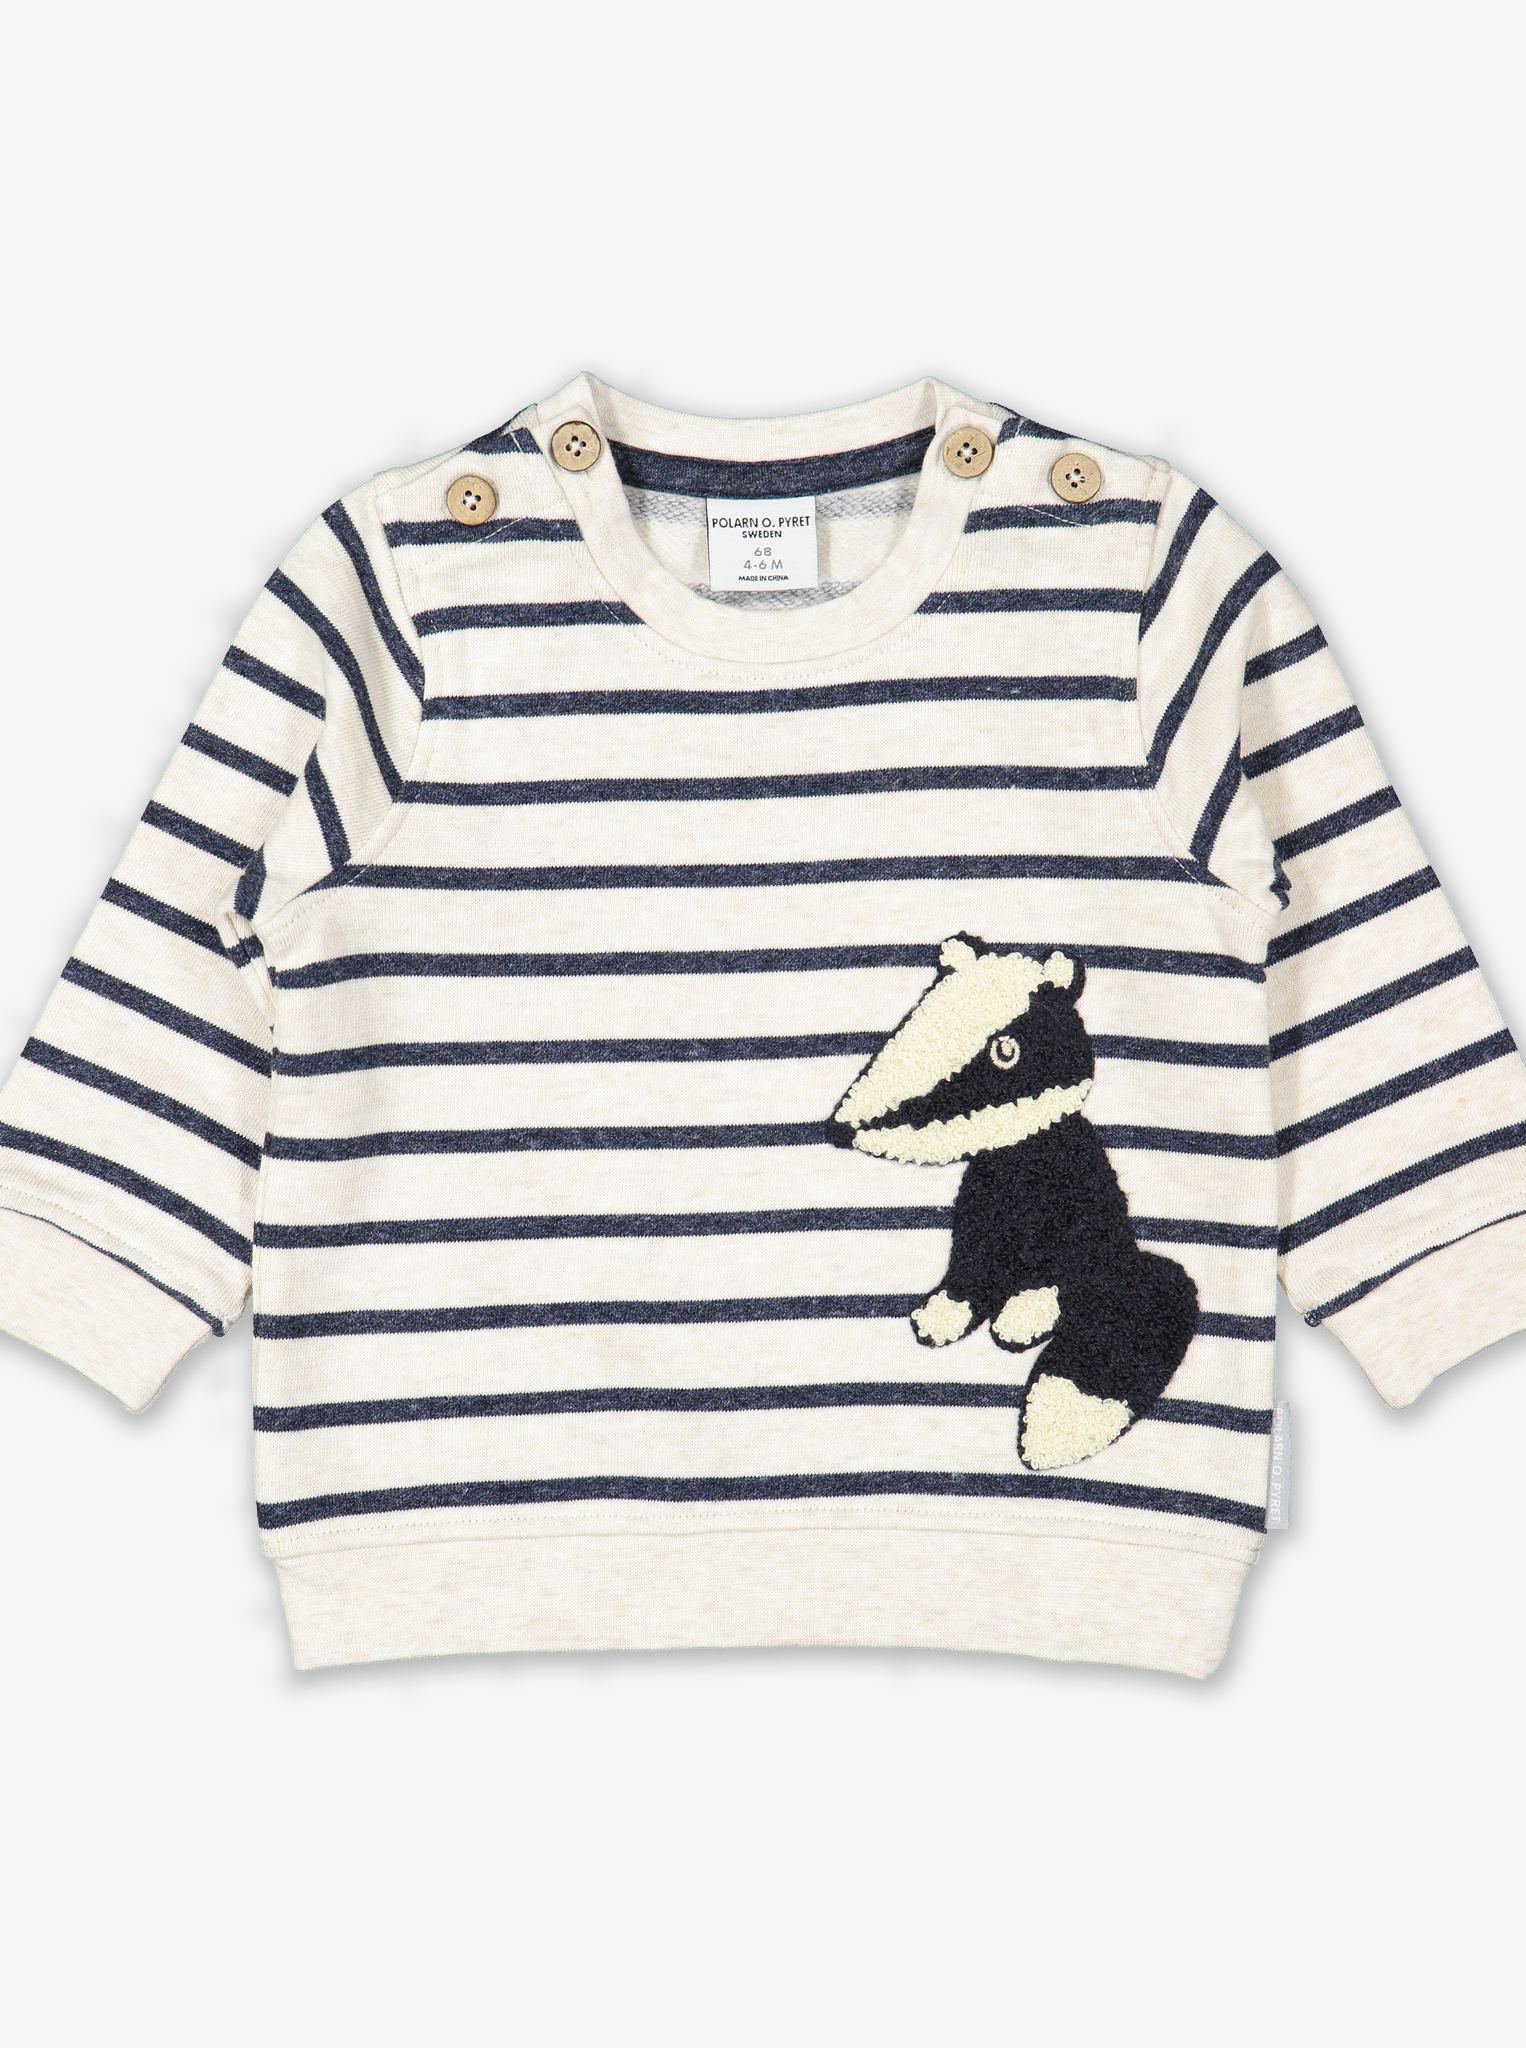 Badger Appliqu㉠Baby Sweatshirt White